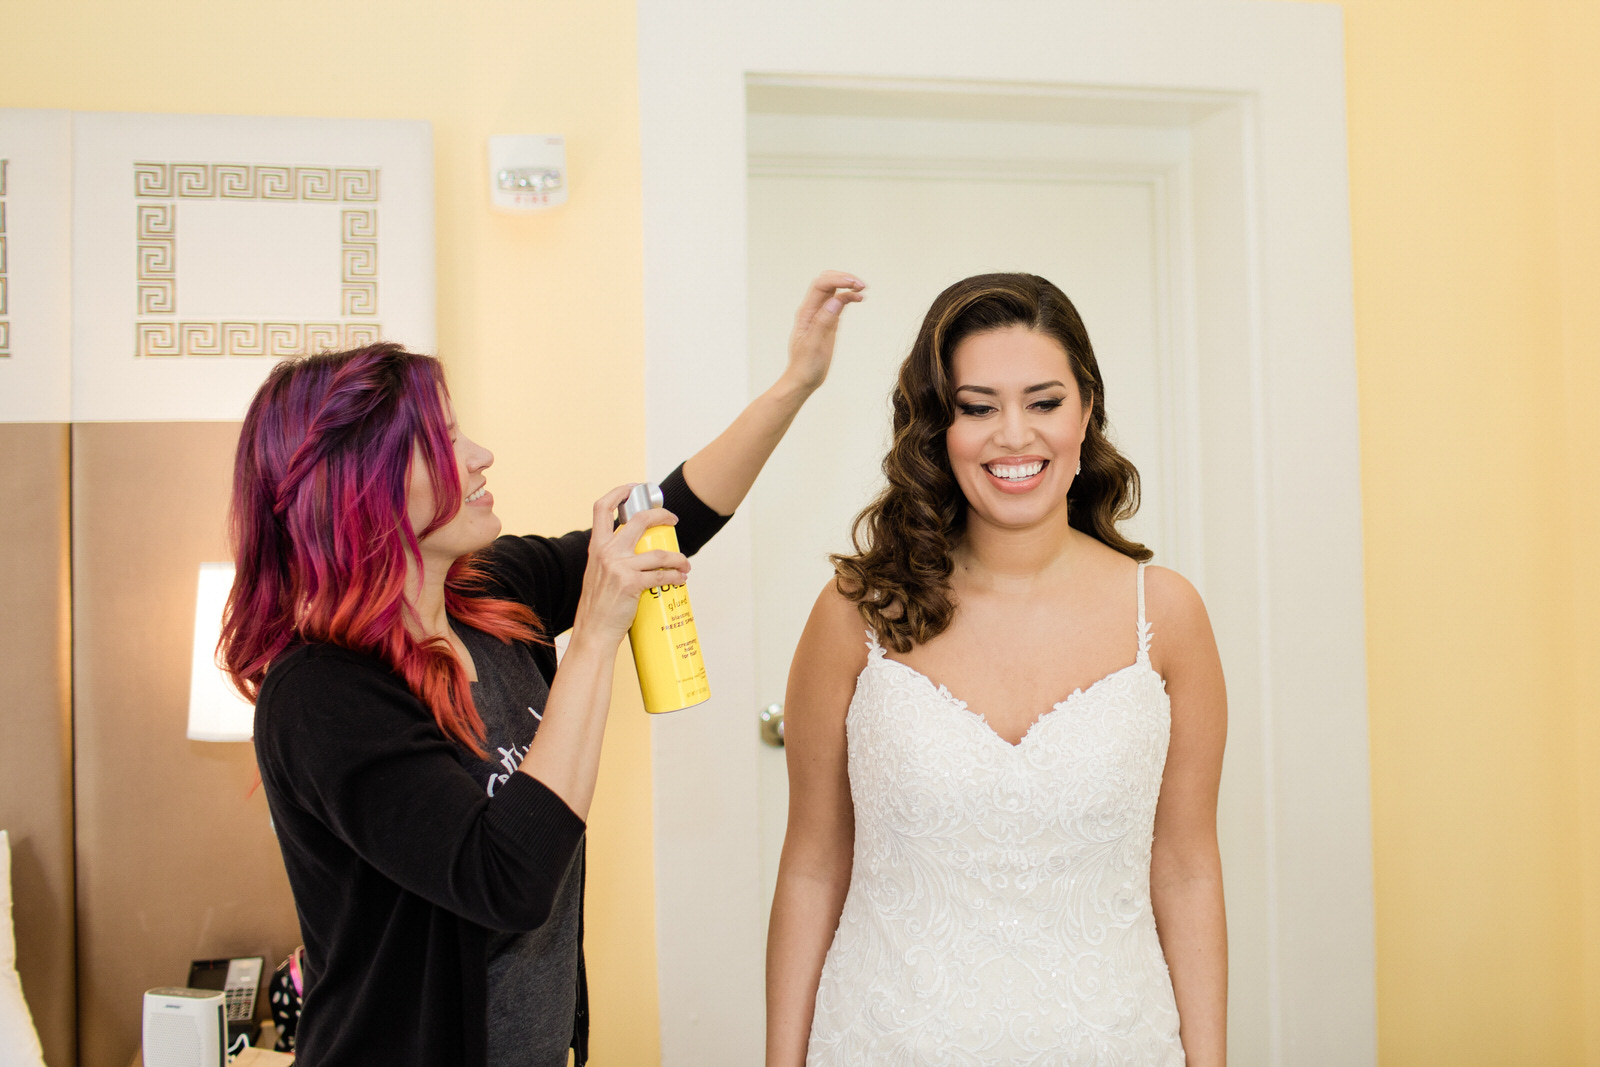 Bridal Hairstyling (Sept. 21 - Oct. 21)